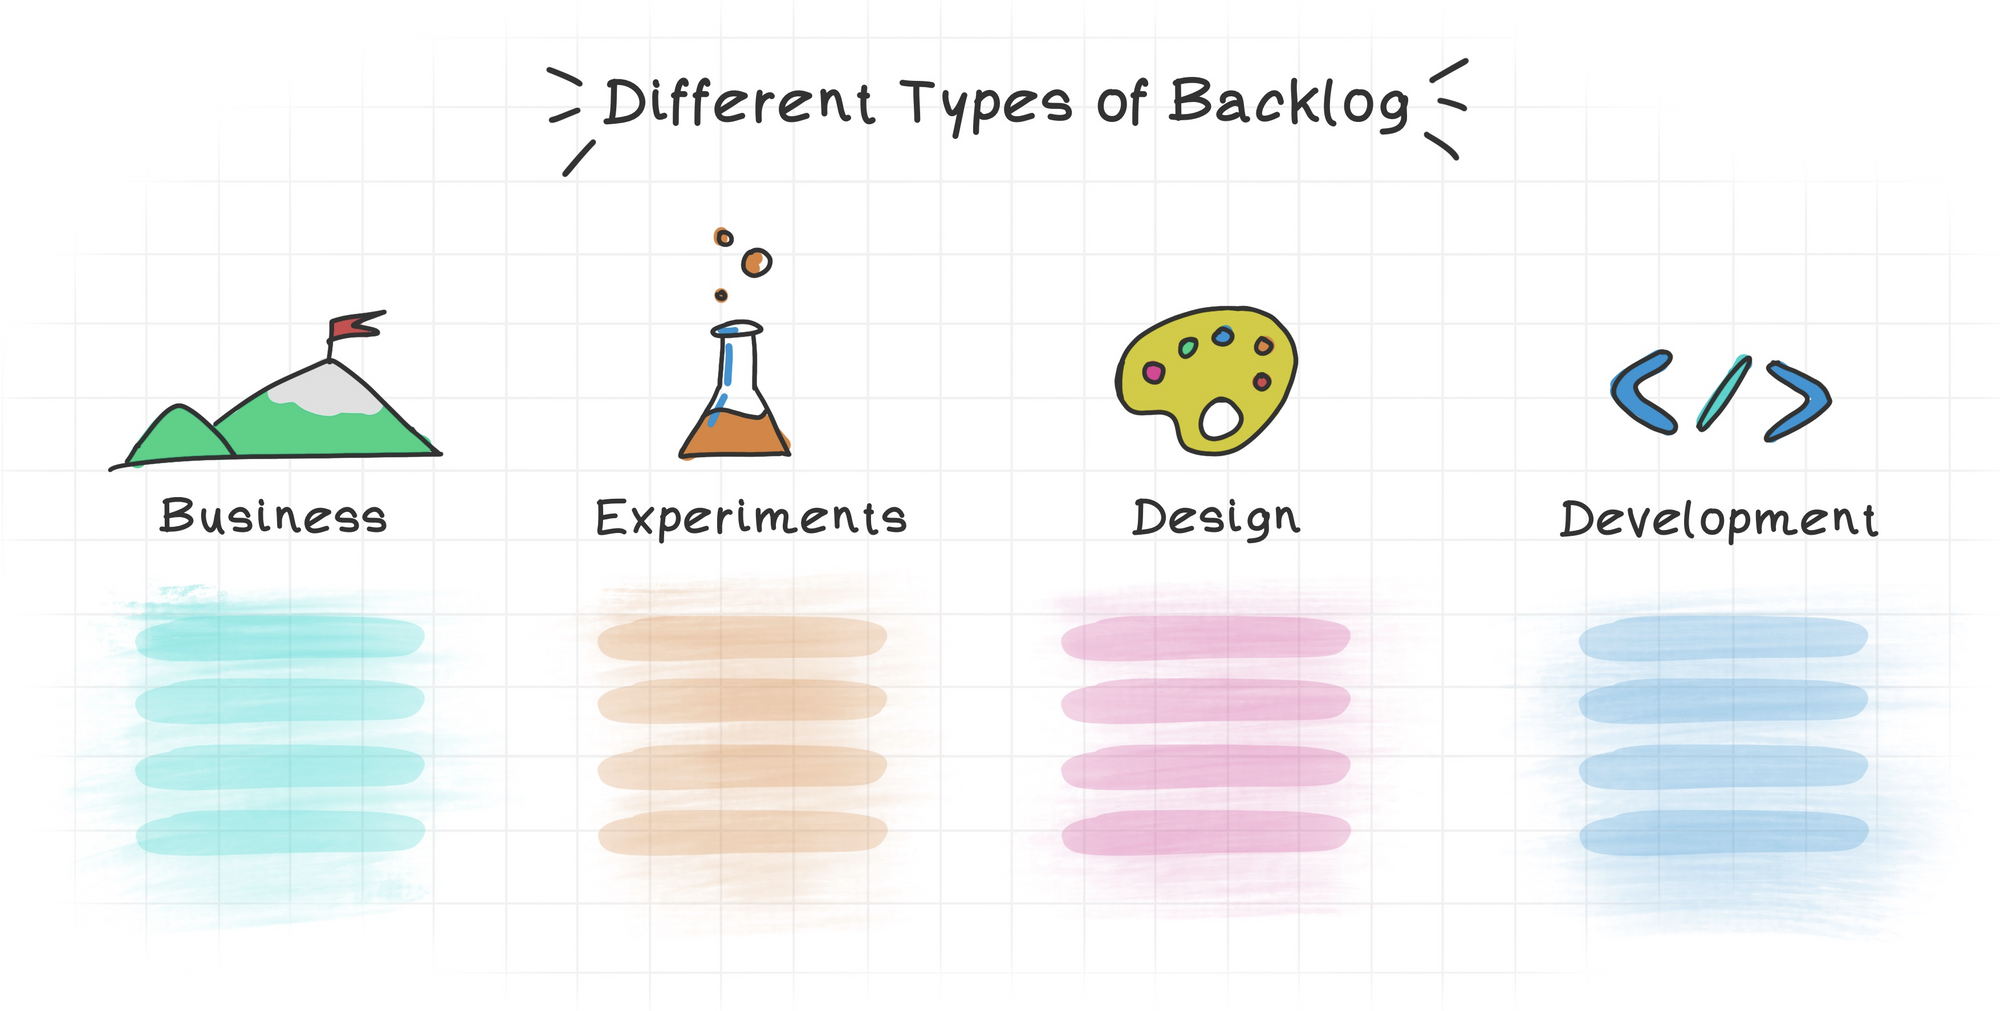 What are the different backlog types?